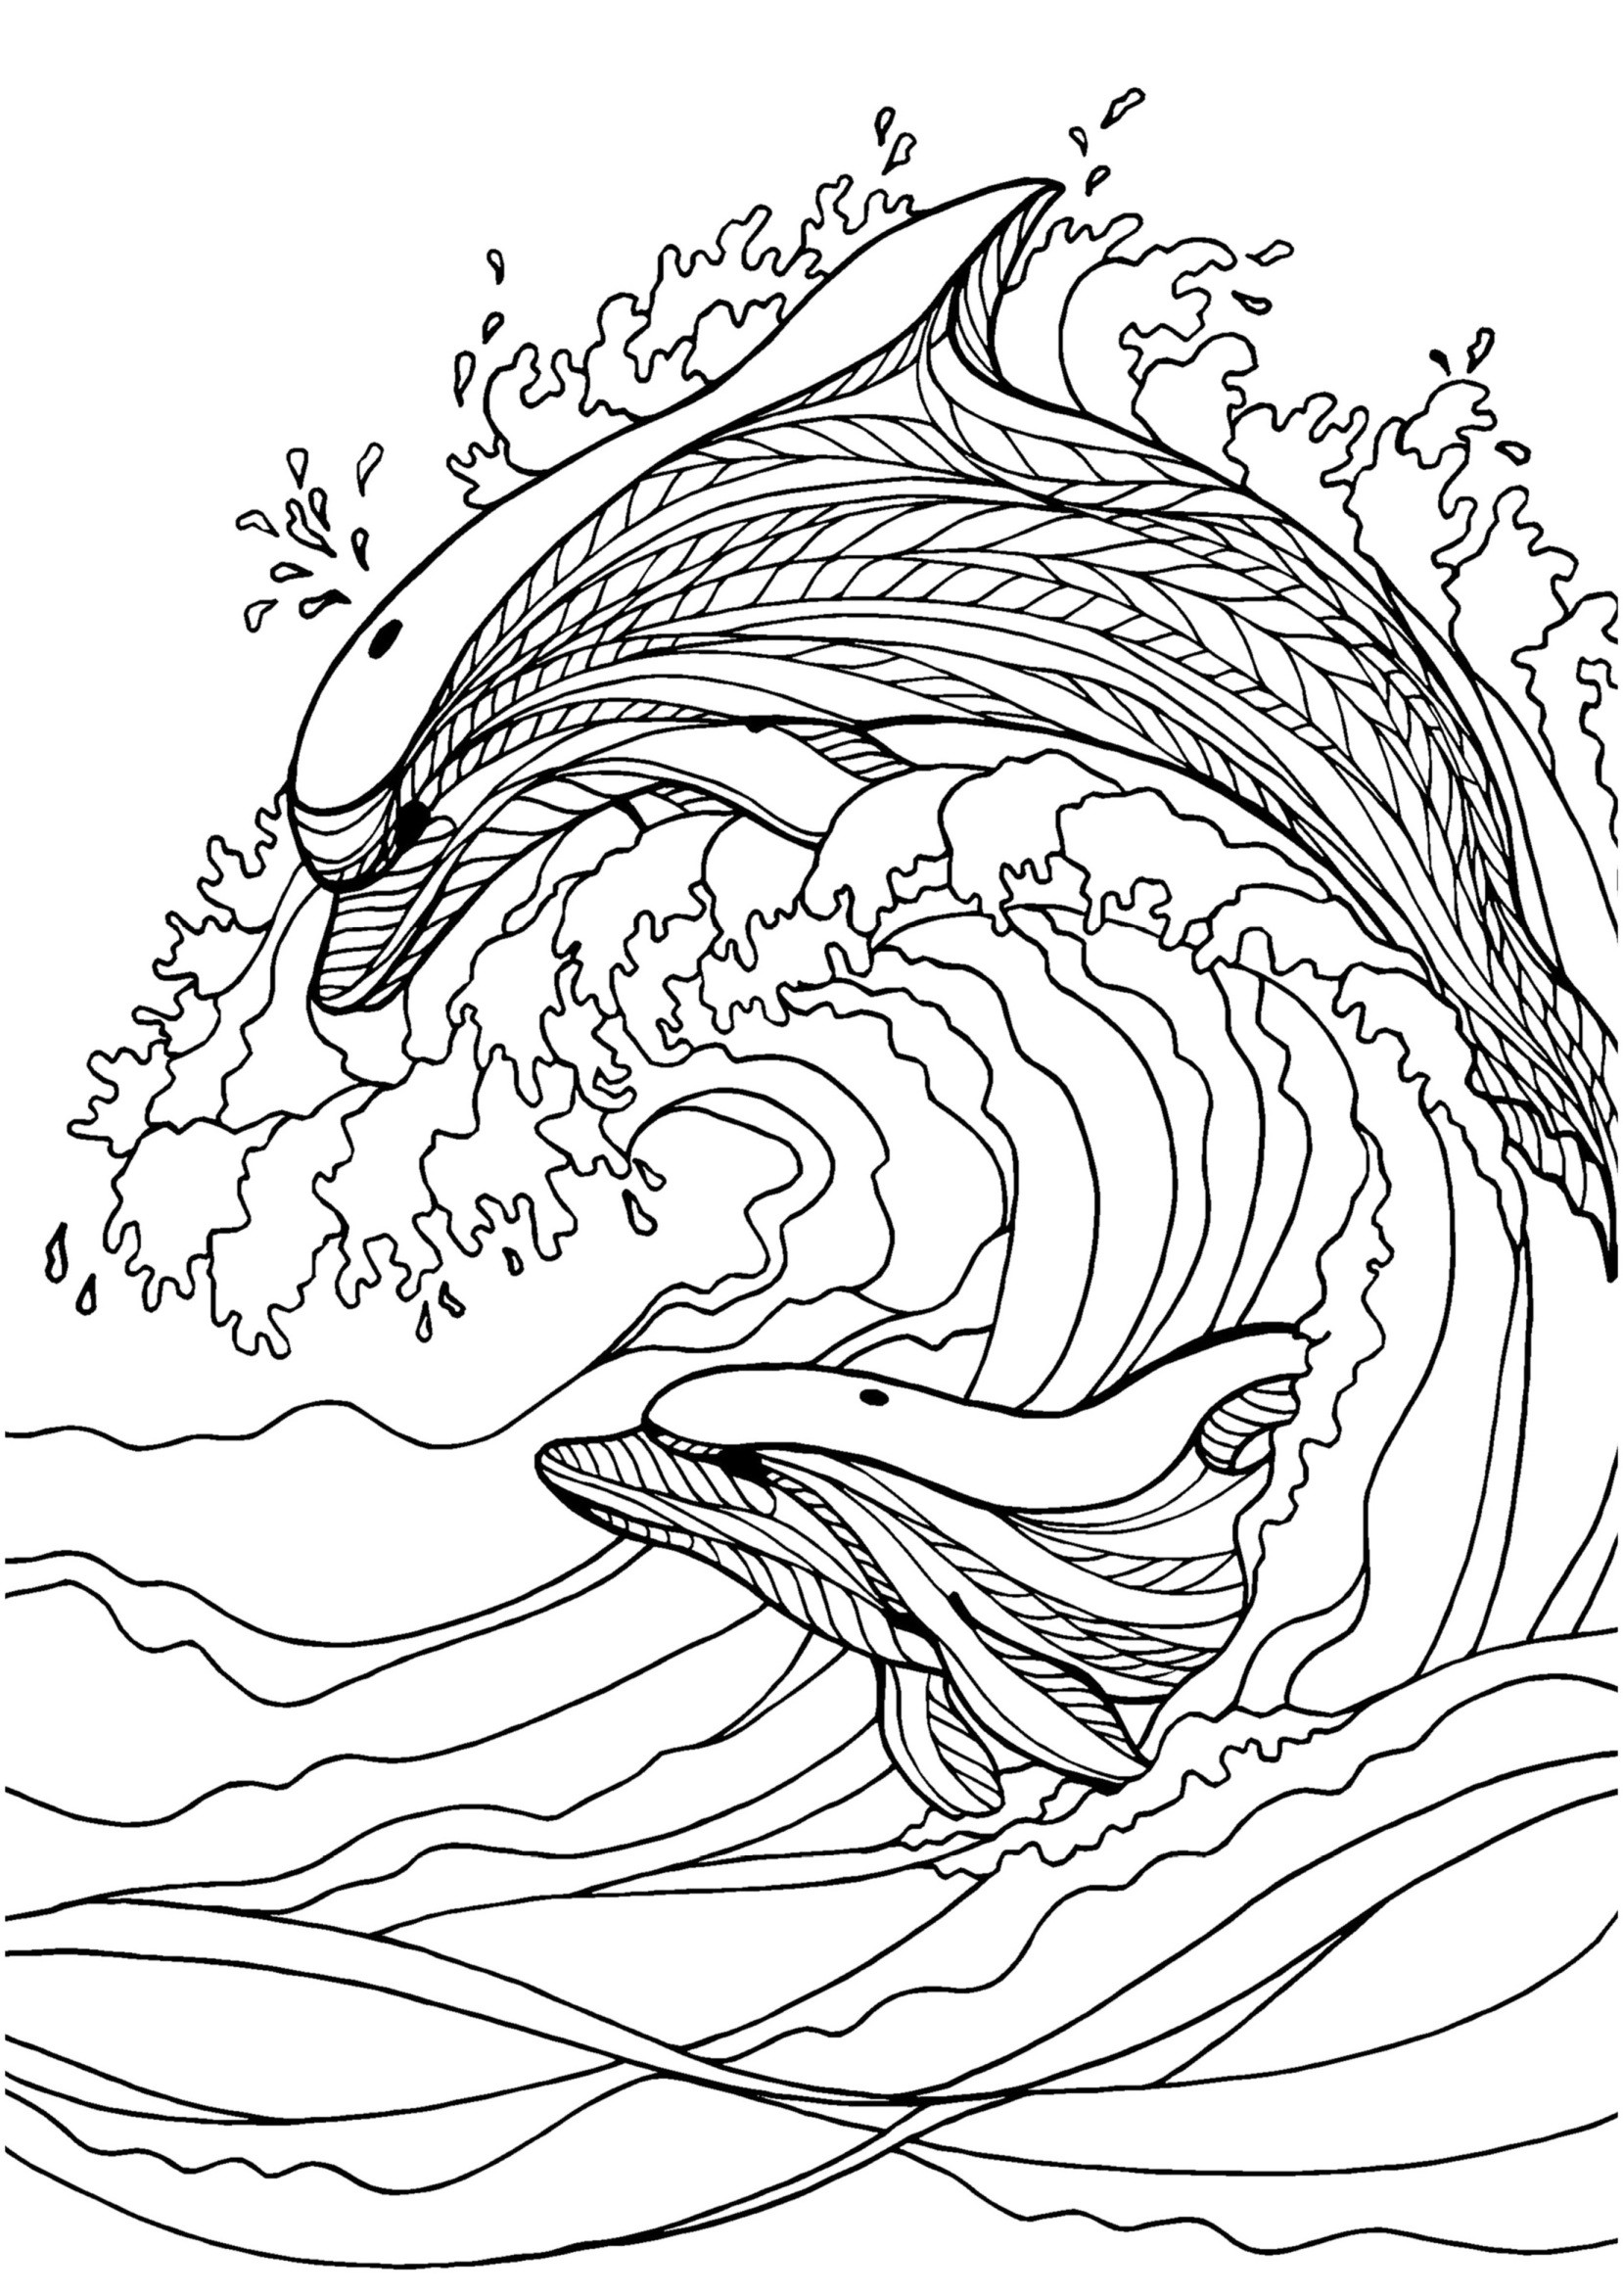 dolphin colouring in free dolphin coloring pages in dolphin colouring